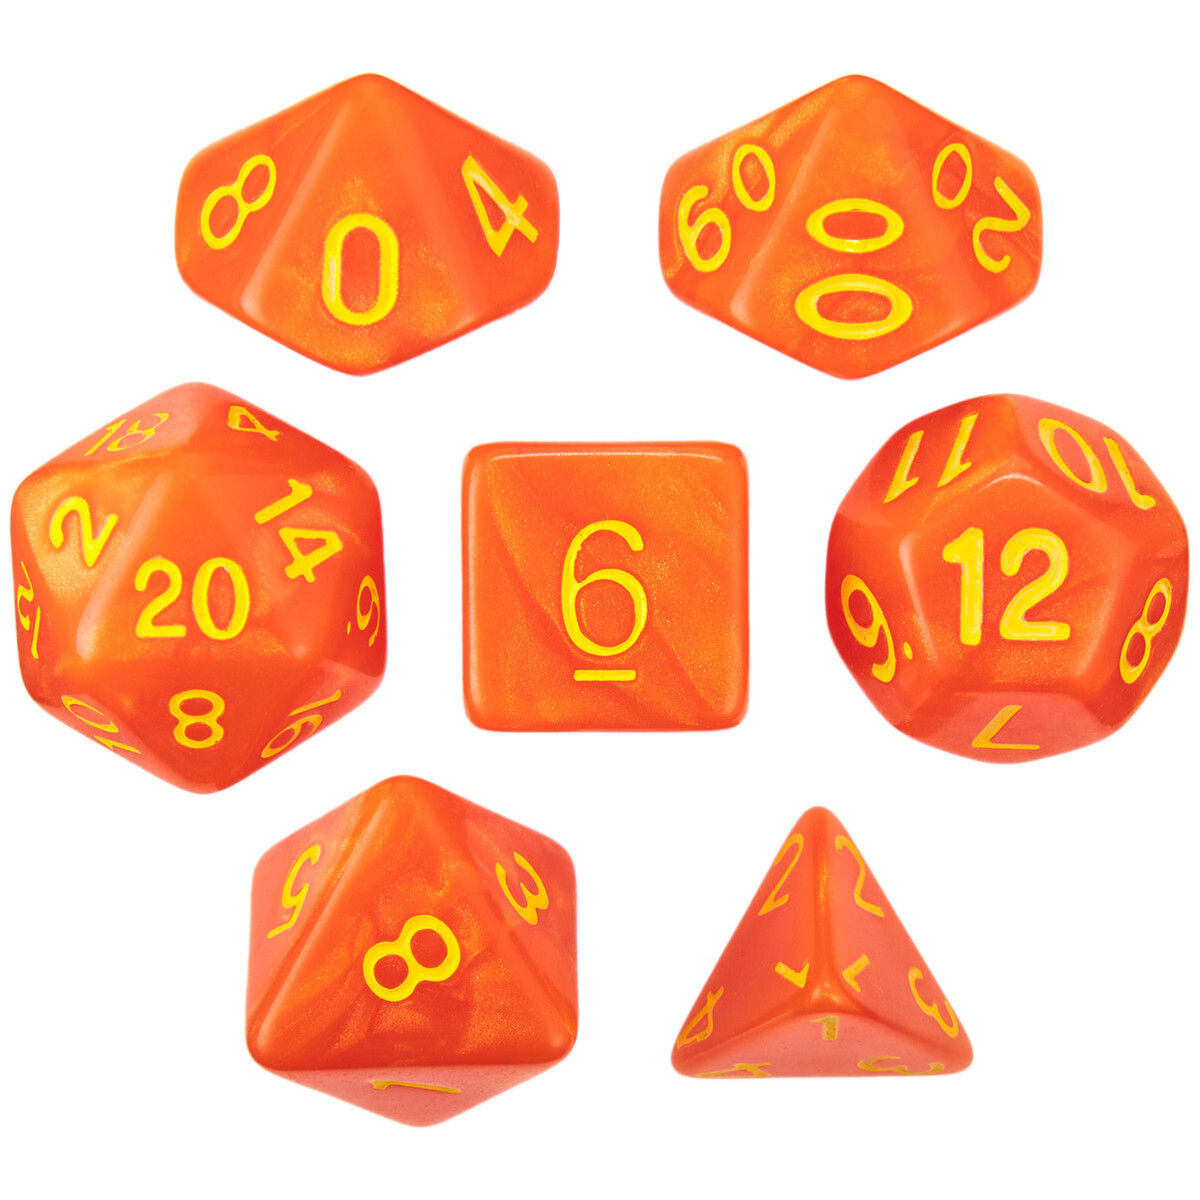 16mm 7 Die Polyhedral Set - Flamekeeper - Shimmer Orange With Yellow Paint - RPG Tabletop Games Roleplay Cards CCG Board Random Roll Decision